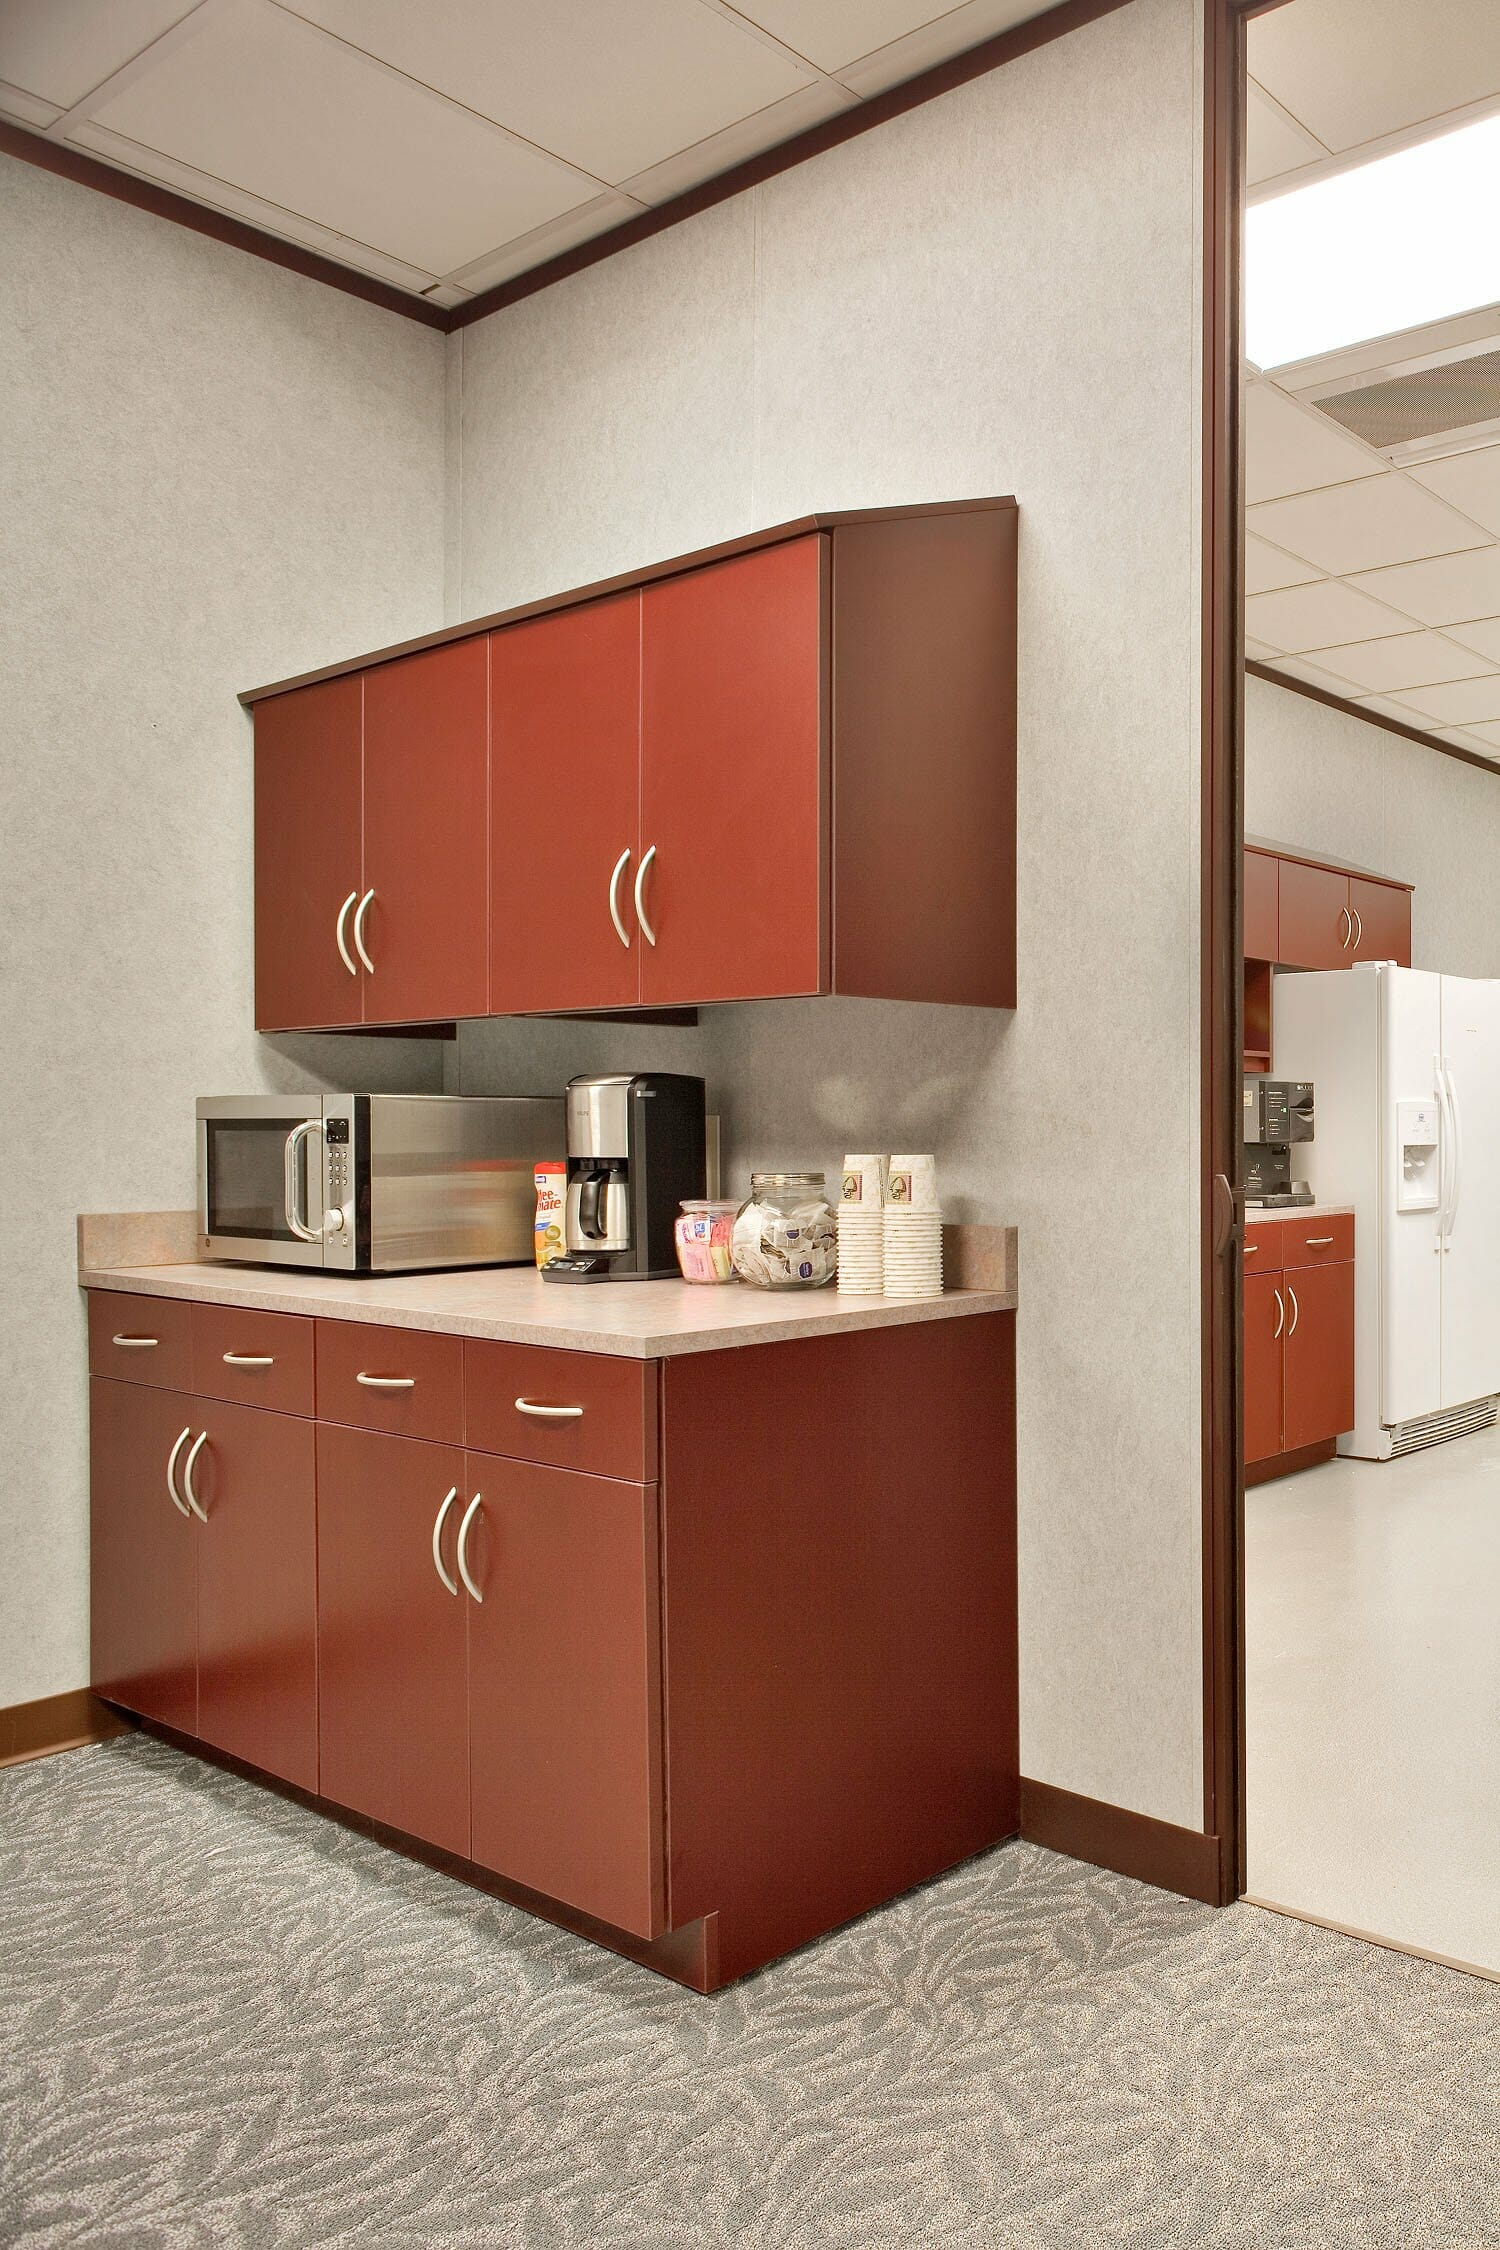 Kitchen Furniture Nj Design800600 Office Kitchen Furniture Breakroom And Lunchroom